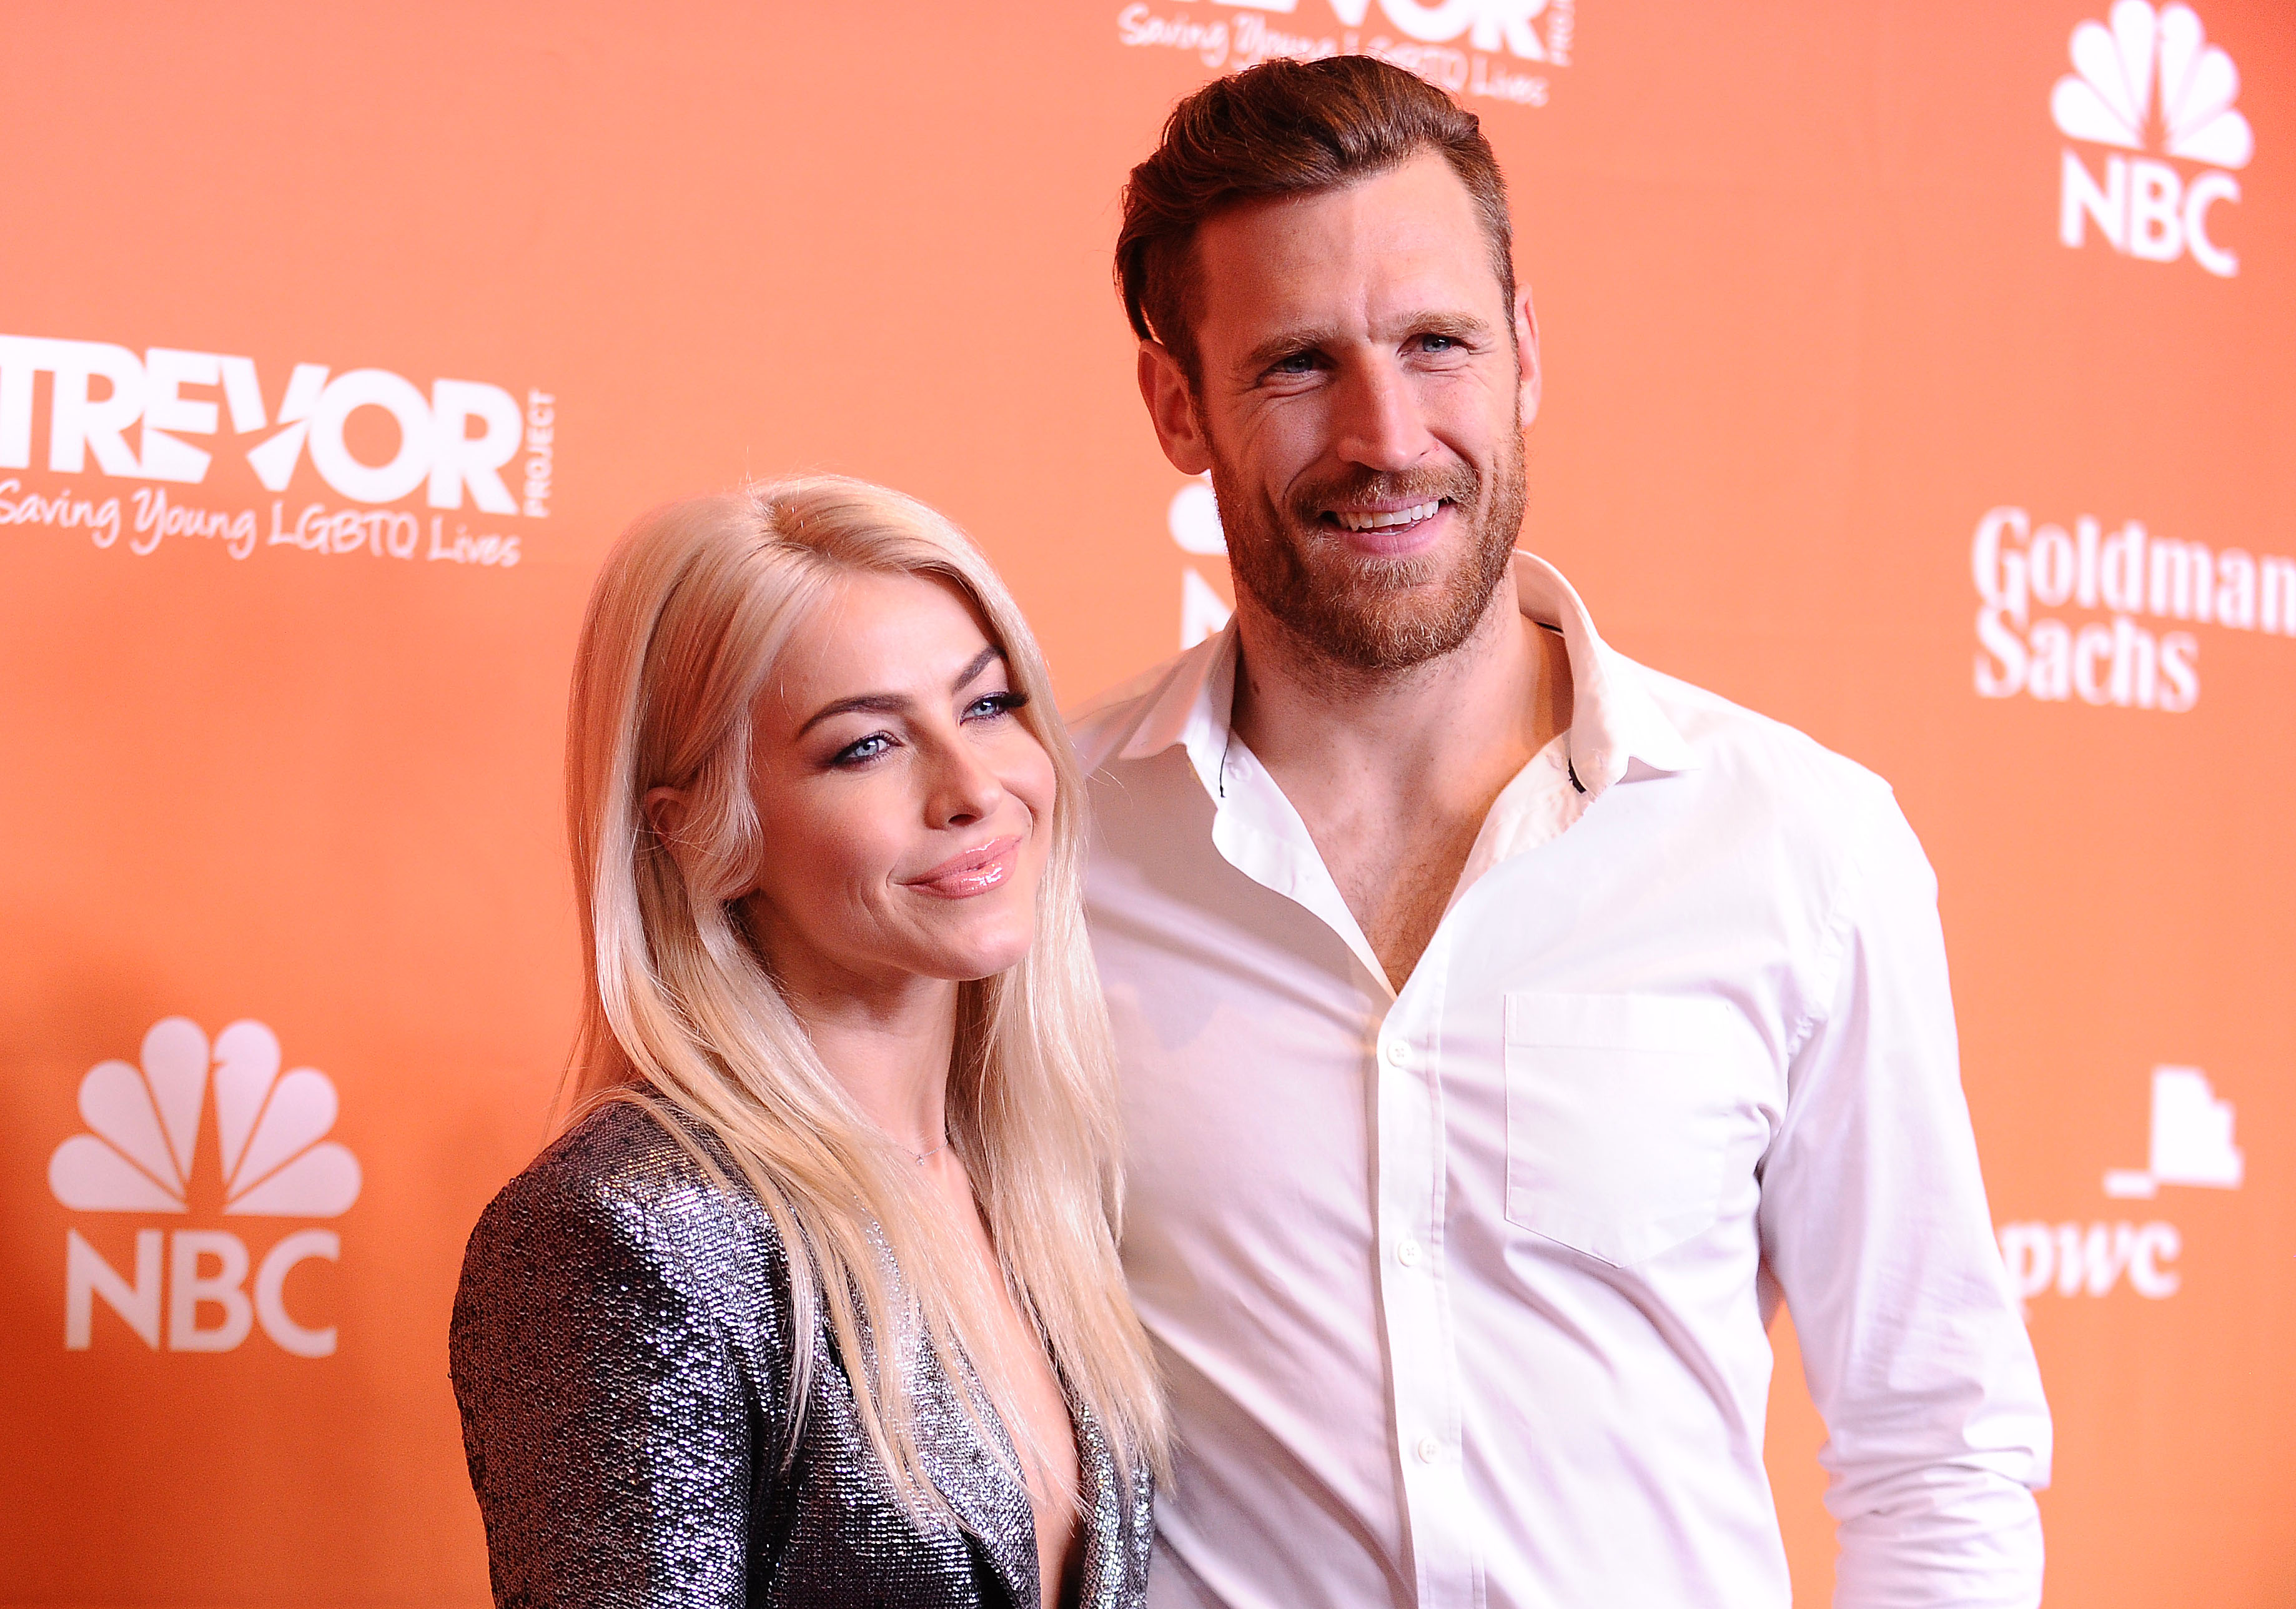 BEVERLY HILLS, CA - DECEMBER 03: Actress Julianne Hough and husband Brooks Laich attend The Trevor Project's 2017 TrevorLIVE LA at The Beverly Hilton Hotel on December 3, 2017 in Beverly Hills, California. (Photo by Jason LaVeris/FilmMagic)